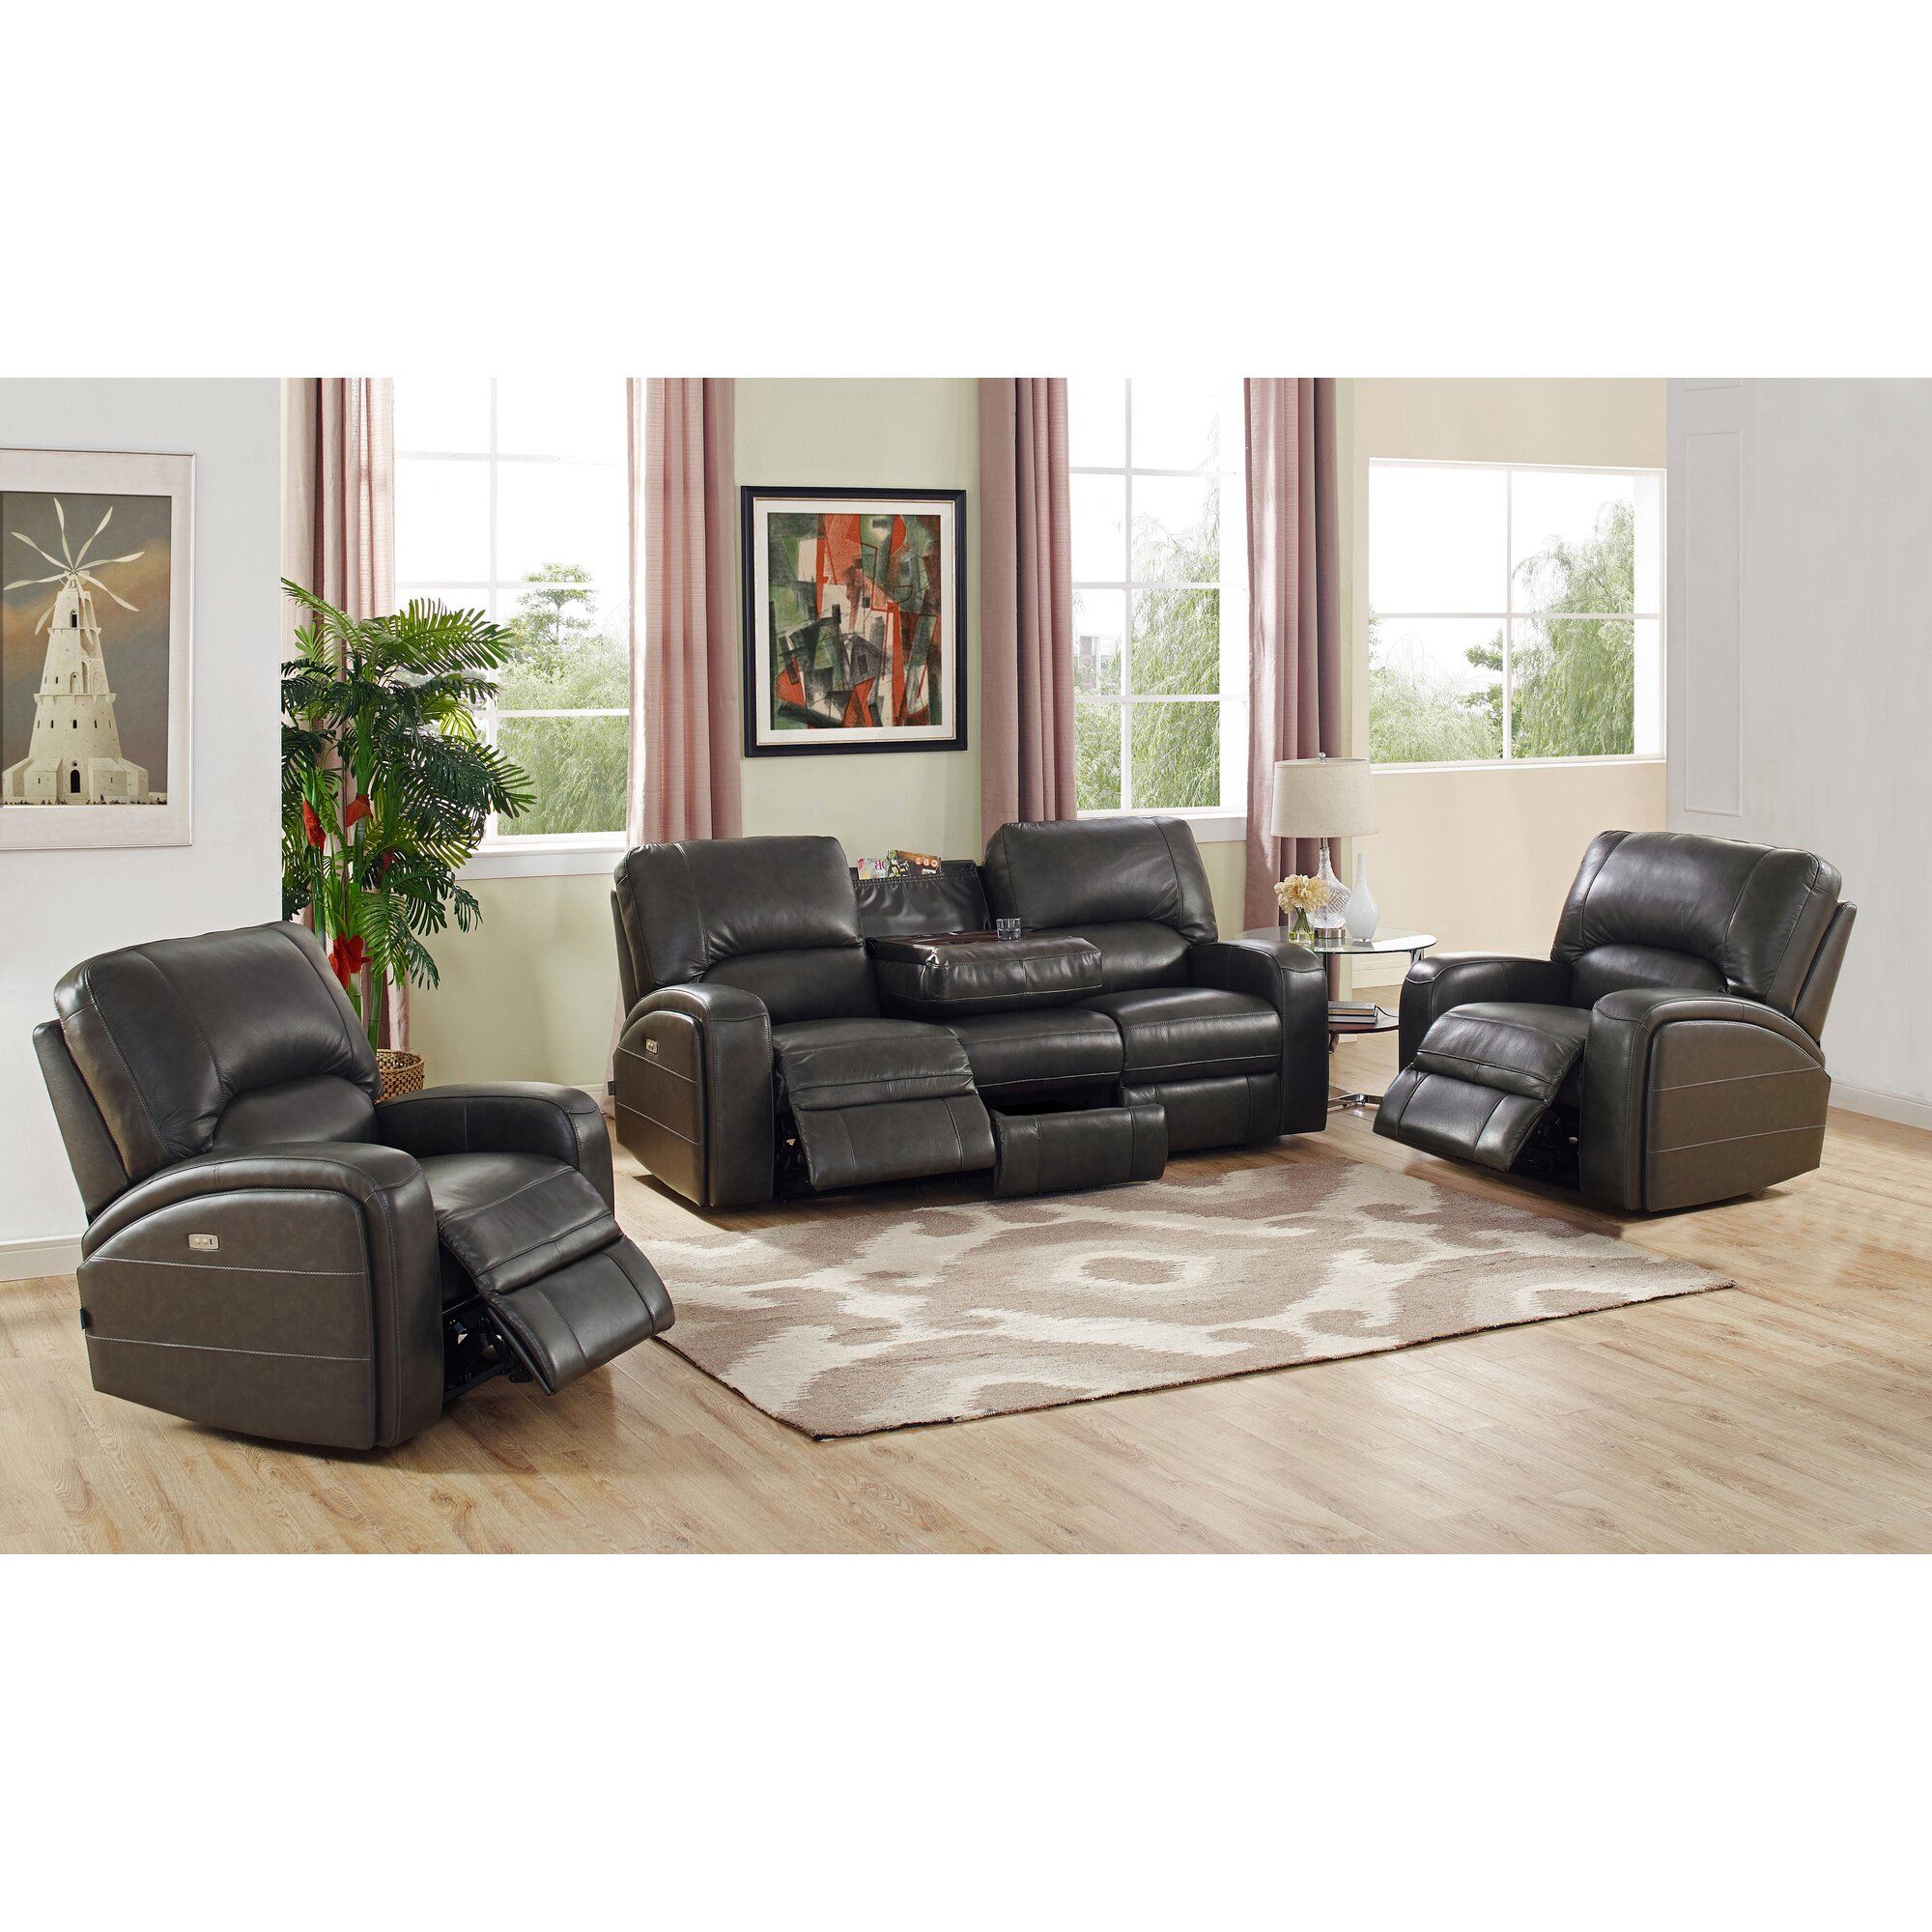 Red Barrel Studio Woodhull Leather Living Room Set